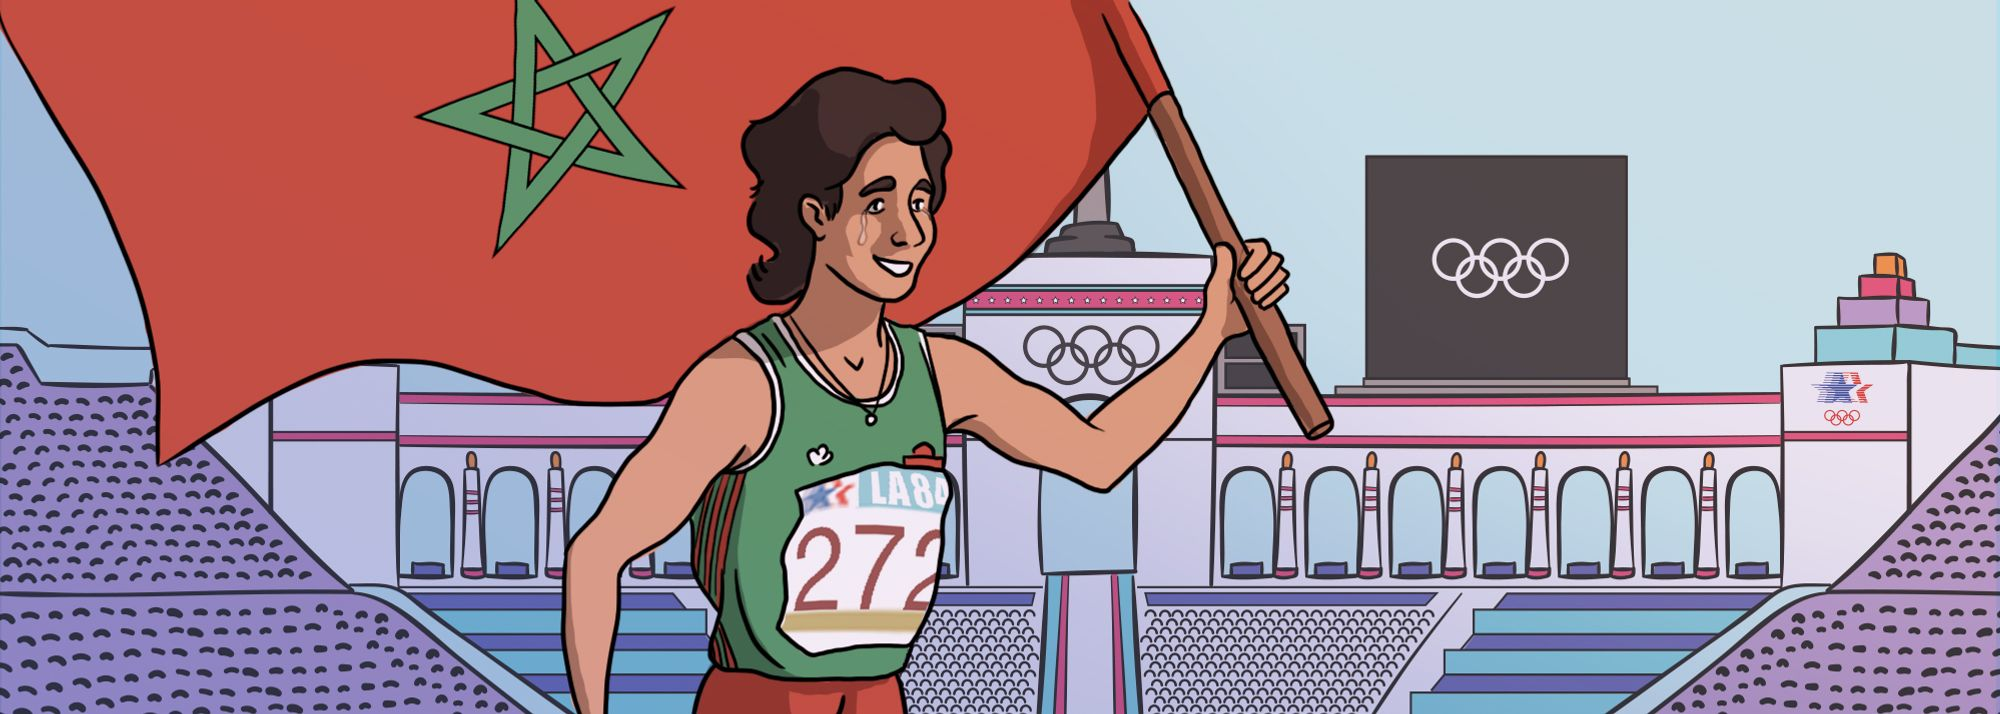 The incredible story of Nawal El Moutawakel, who inspired a generation of Arab female athletes.